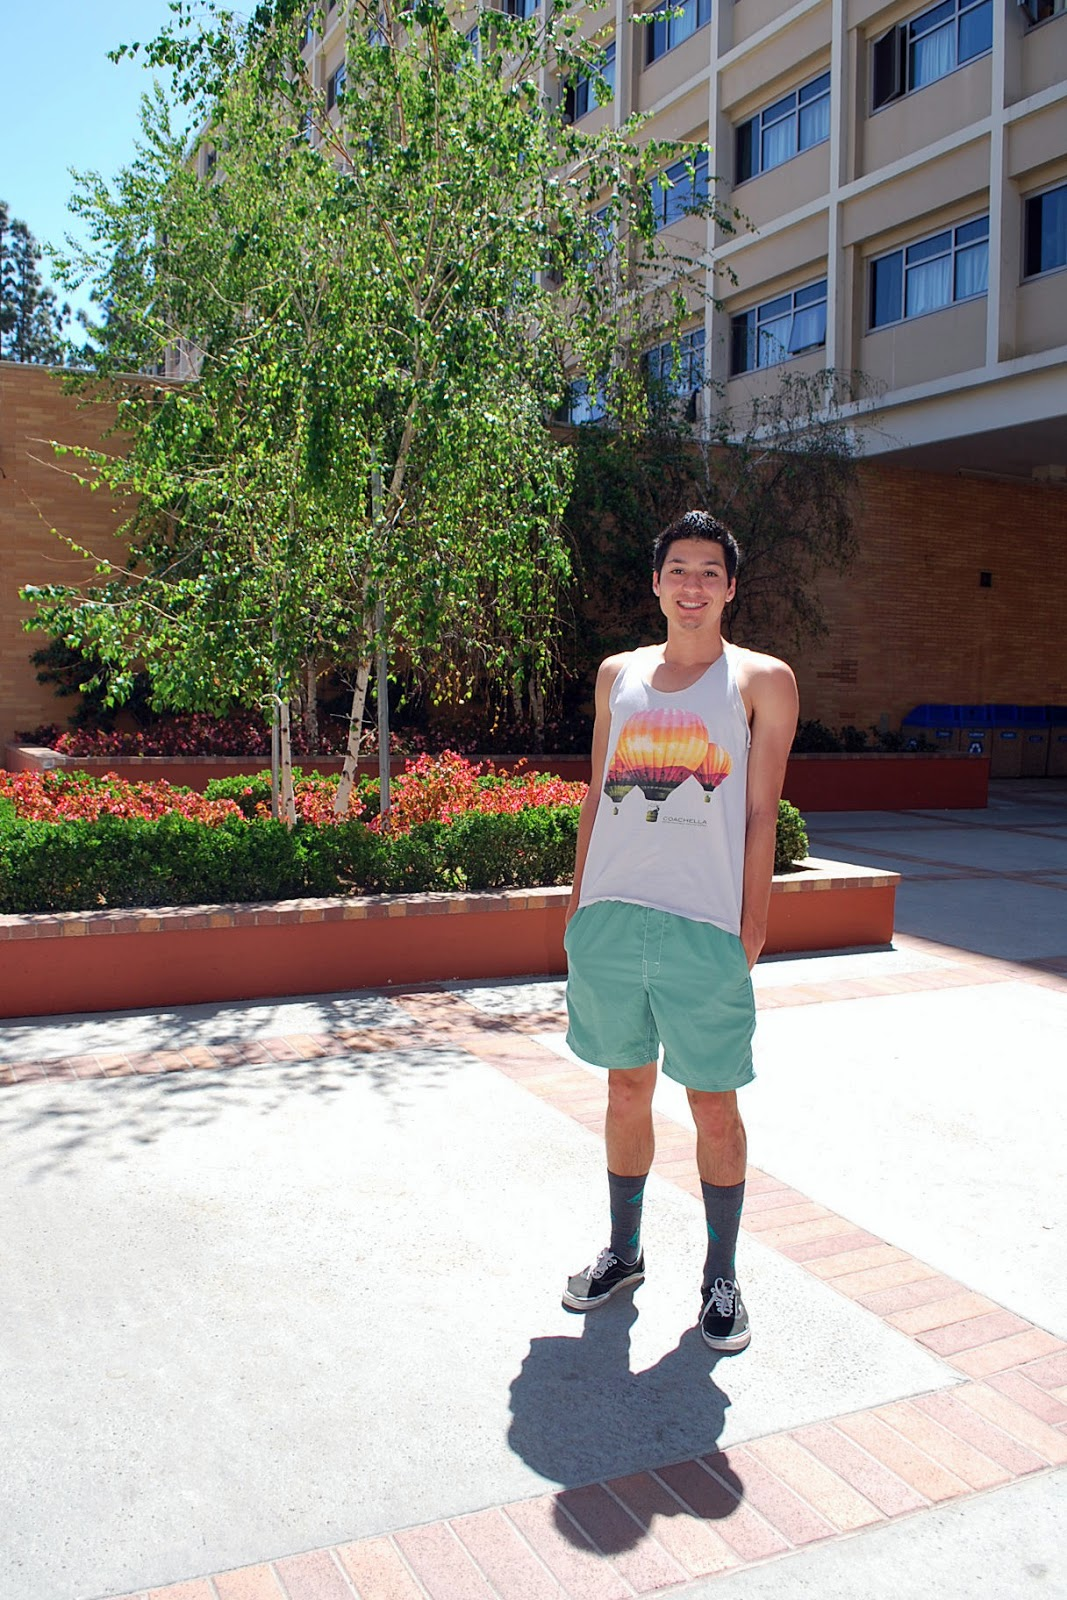 Max is a 1st Year student studying Civil Engineering. He is wearing a gray Coachella balloon print tank top over green shorts and green T-rex dinosaur socks and black vans